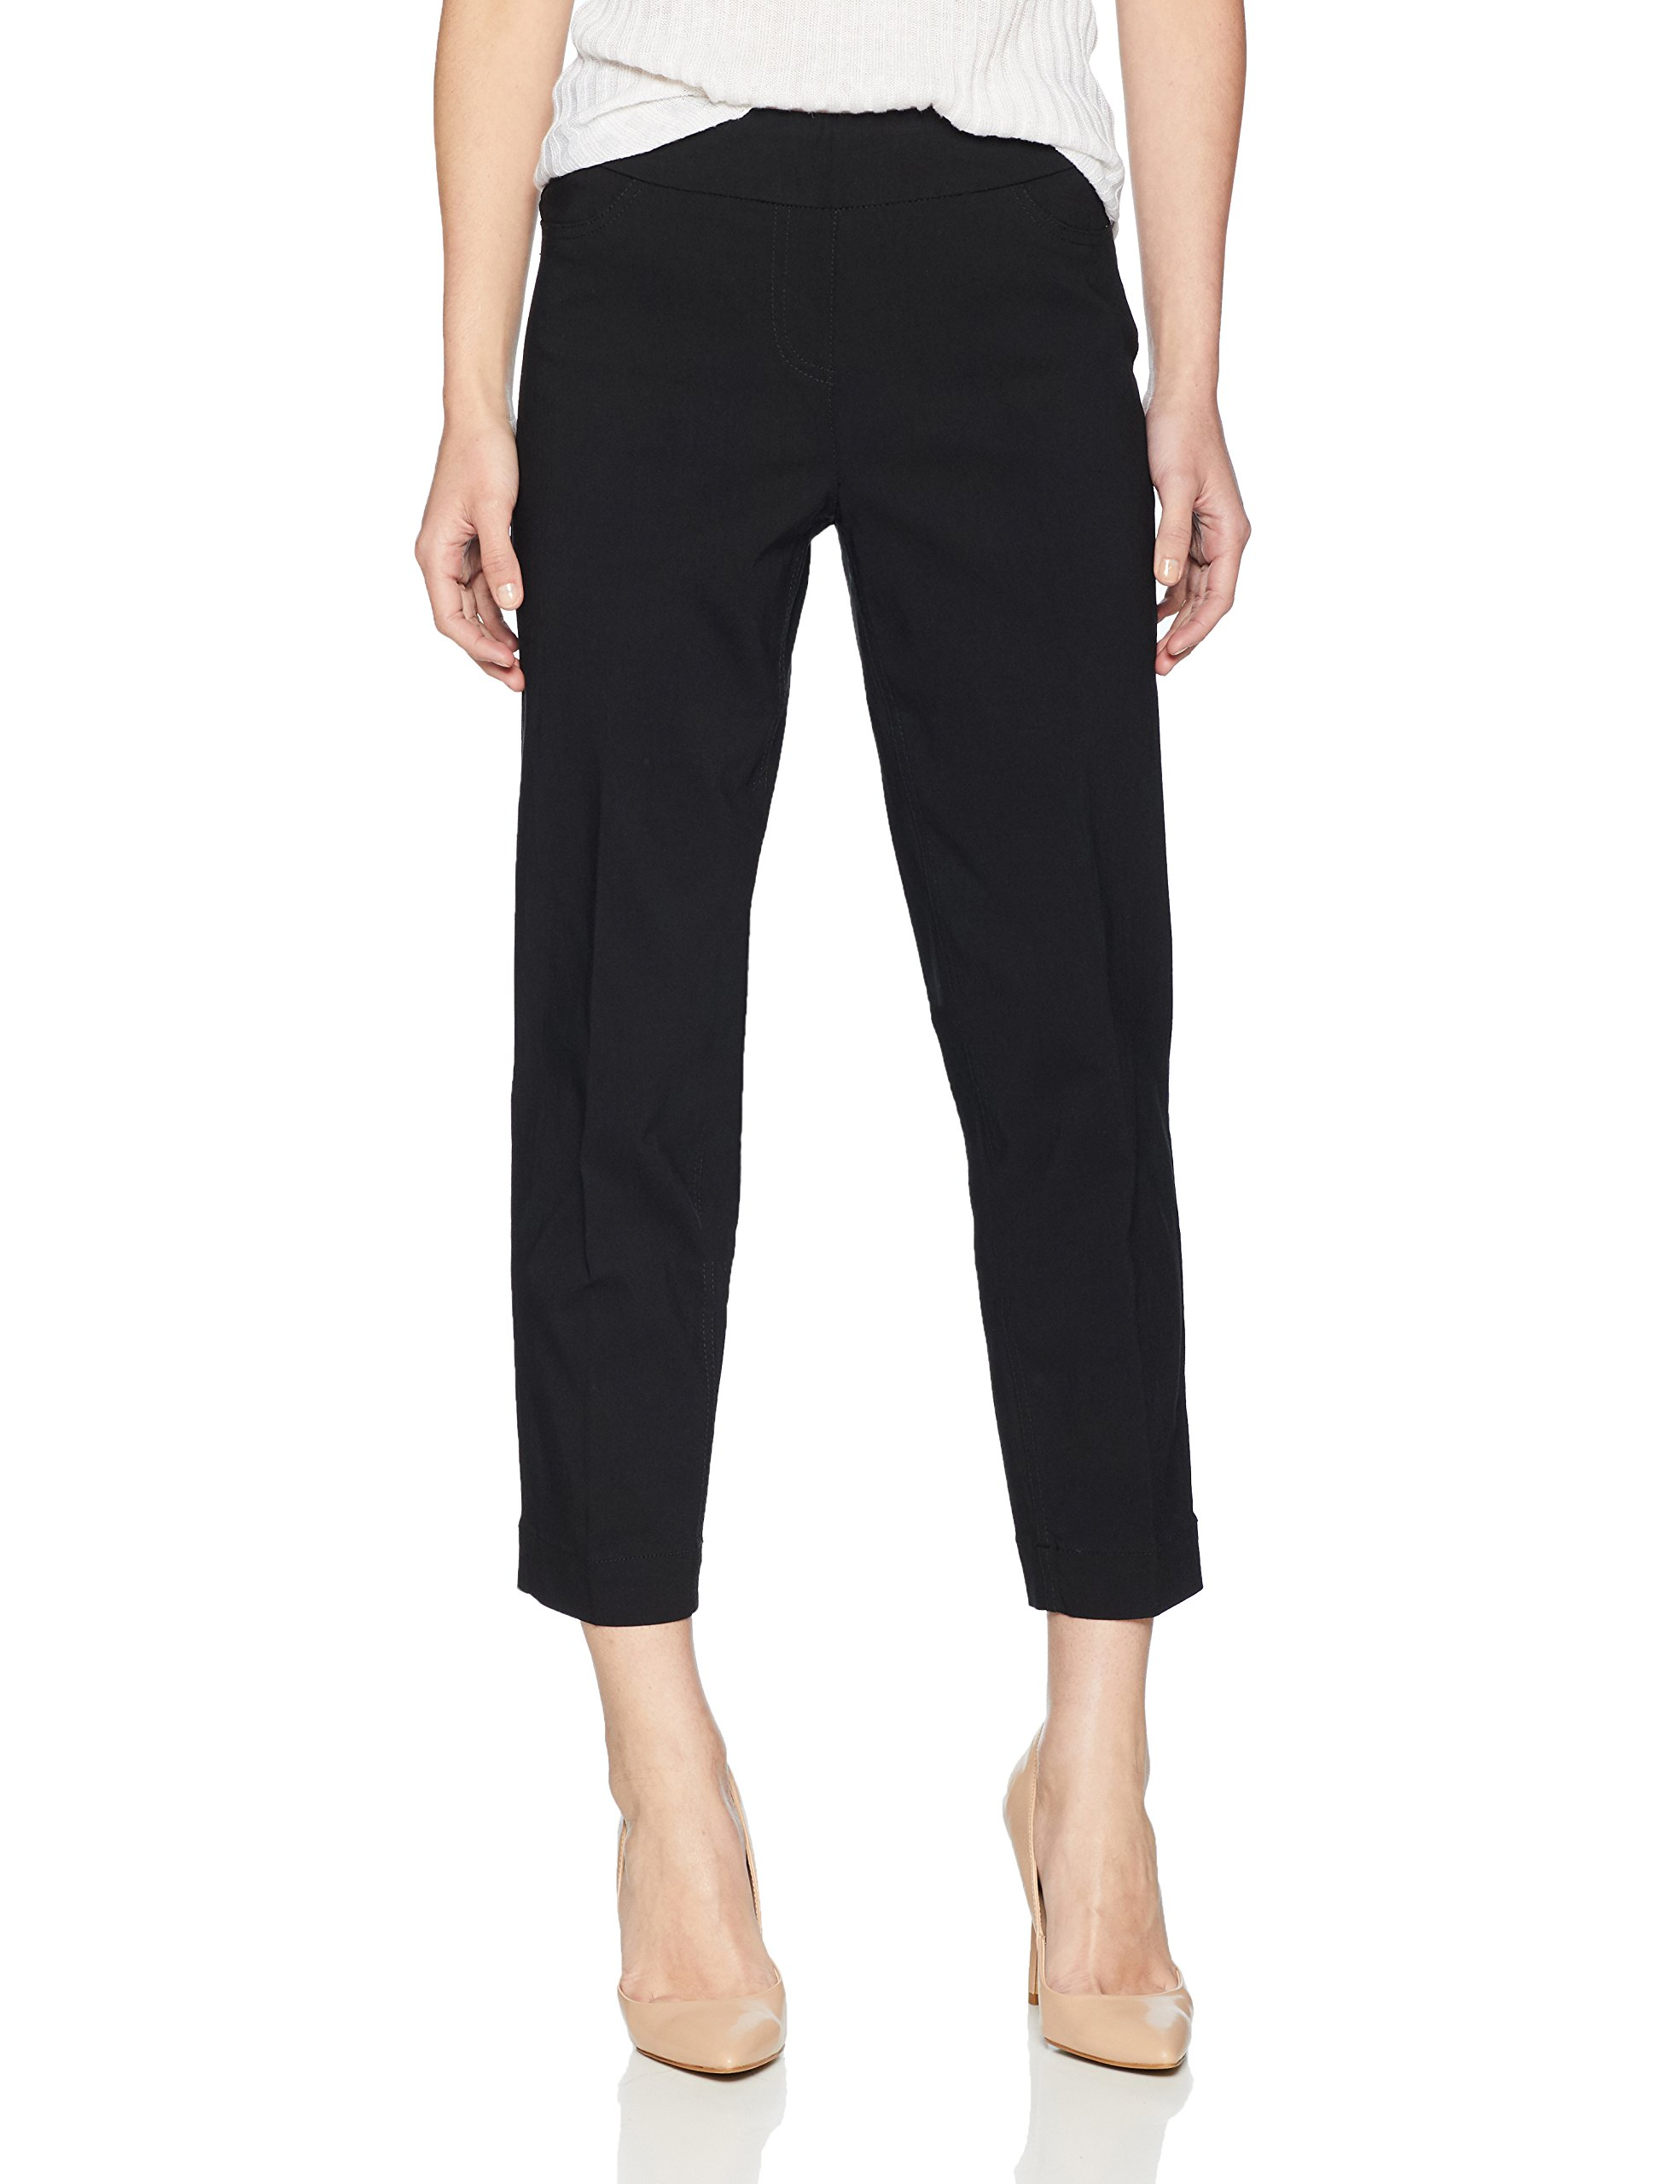 SLIM-SATION Women's Petite Pull on Skinny Solid Crop with Faux L Pockets, Black, 12